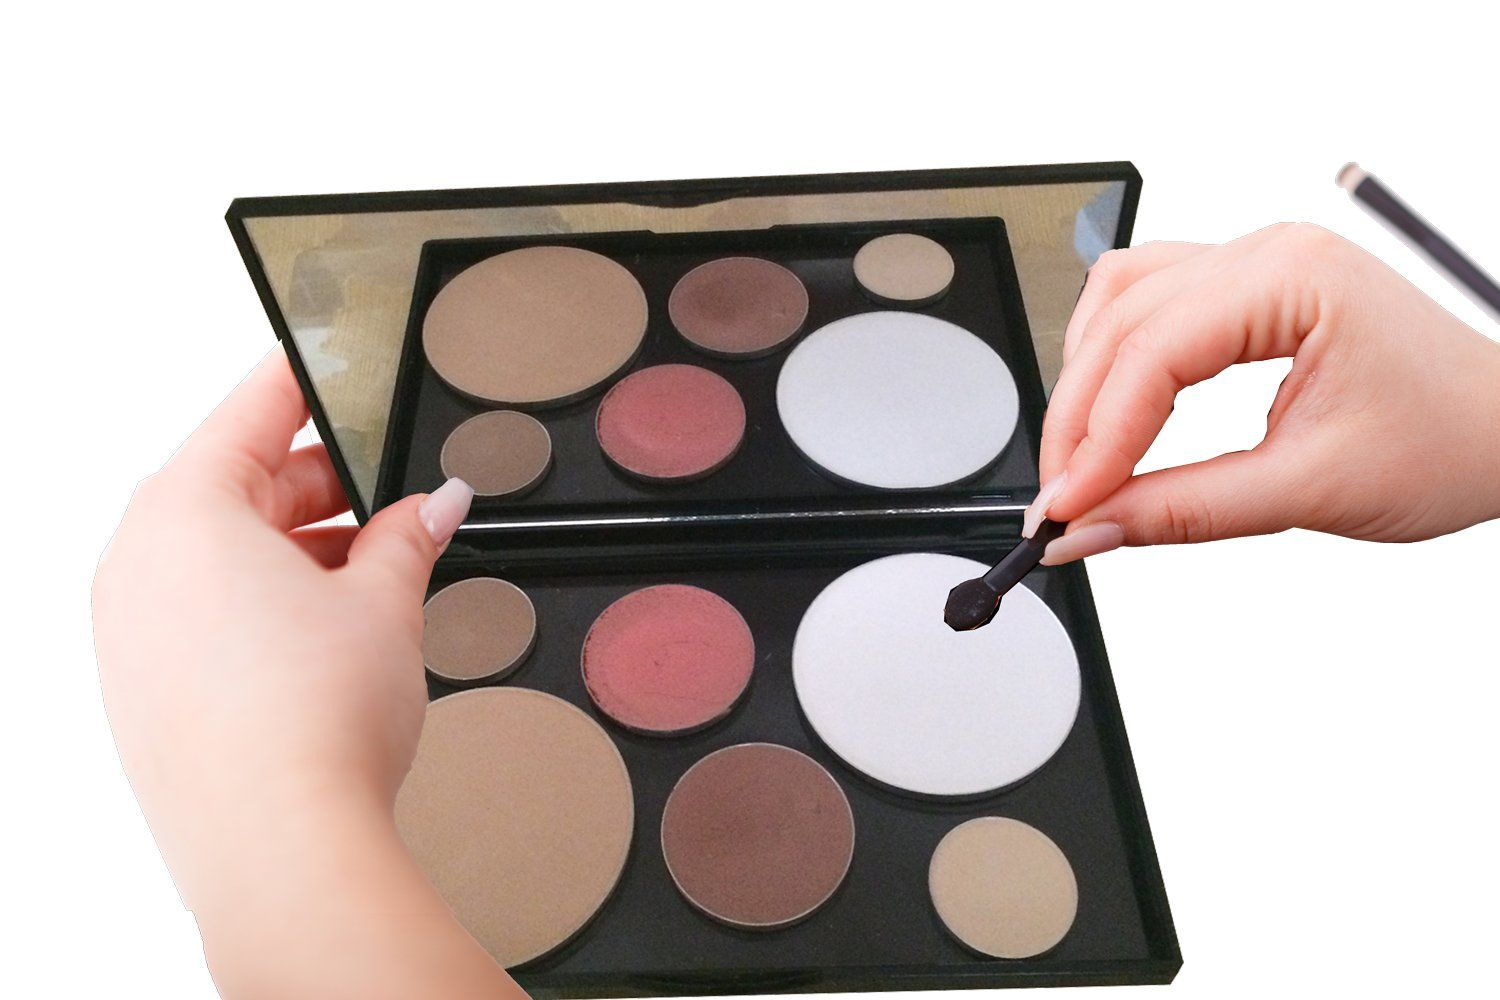 Empty makeup pallette with large mirror makes a